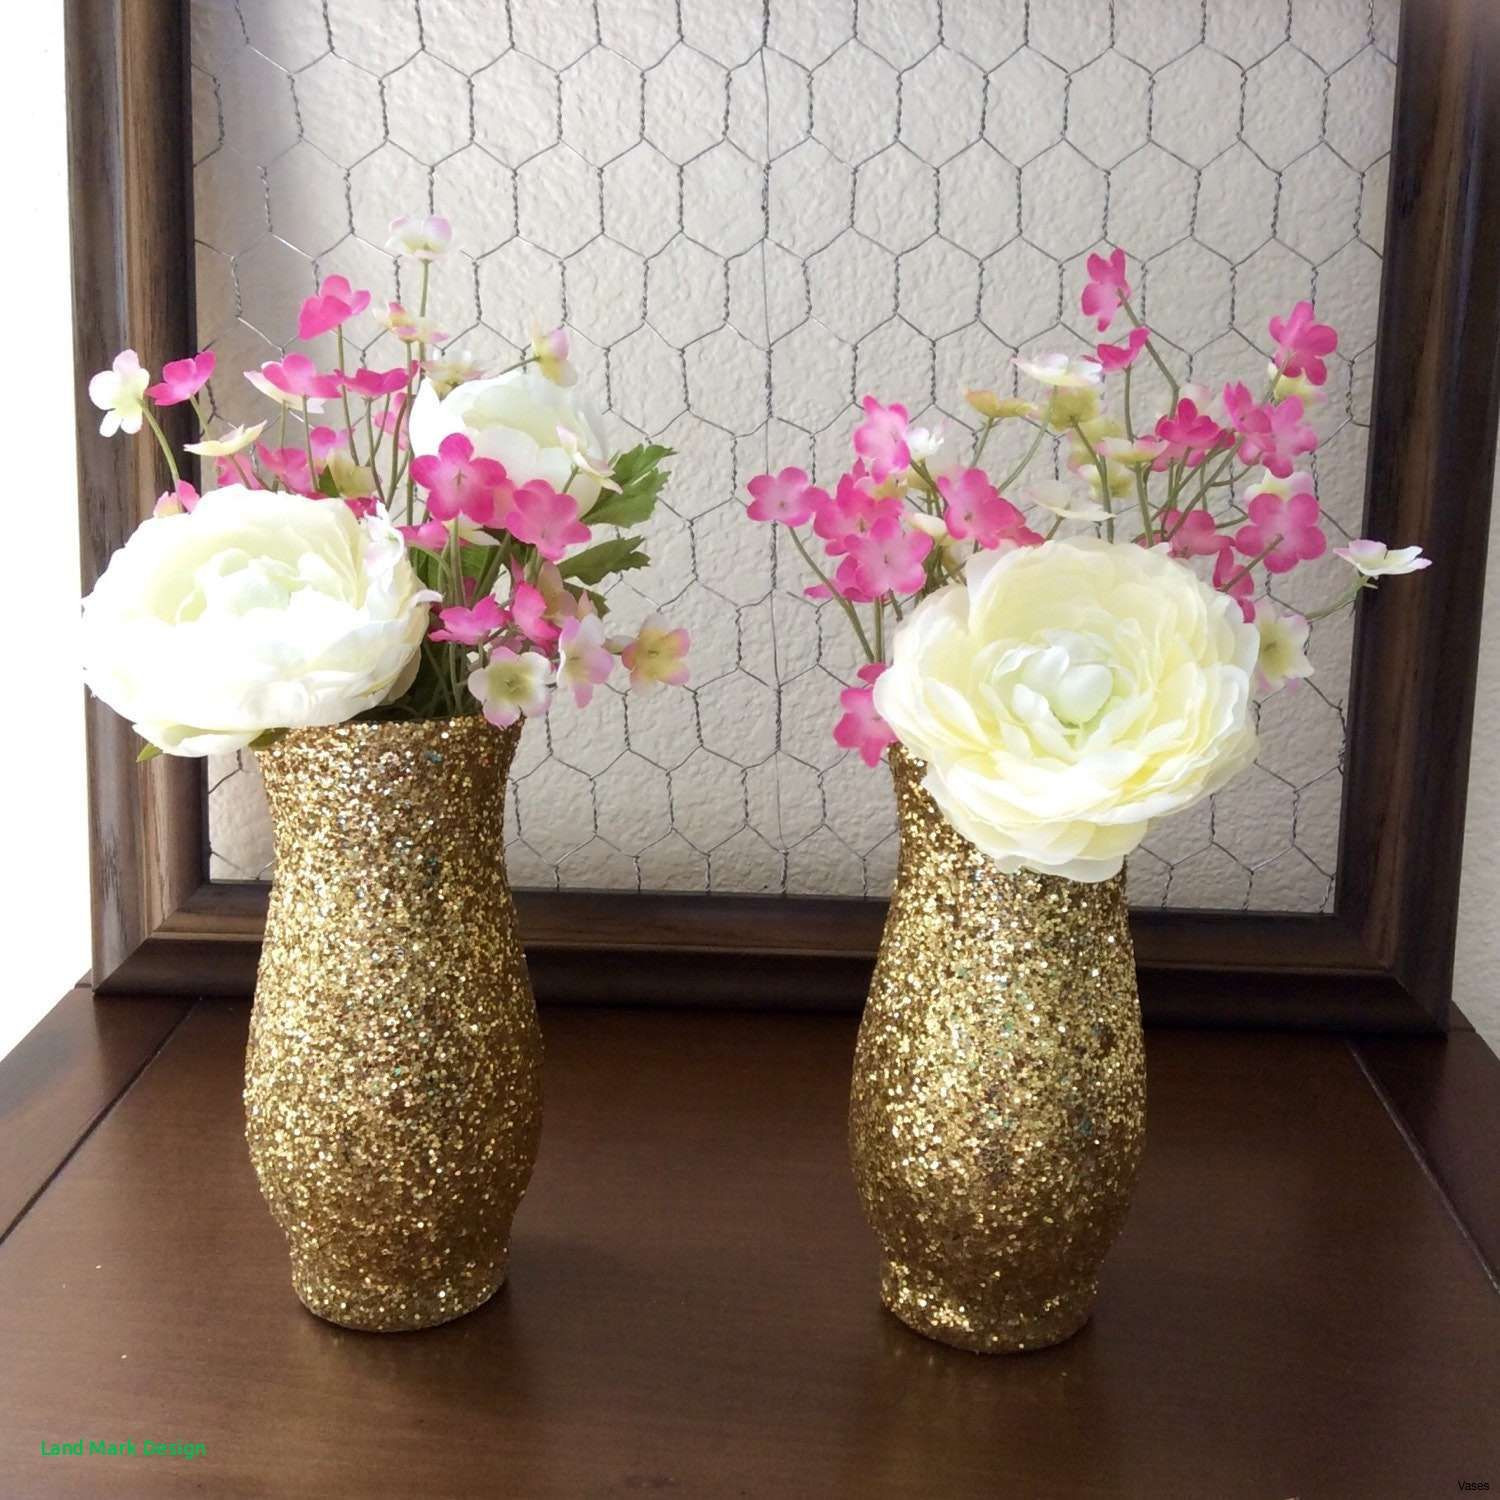 red roses in gold vase of 19 gold flower vases the weekly world throughout il fullxfull 3b2bh vases gold glitter vase set of 10 wedding by i 8d via ydeevnepropecia com